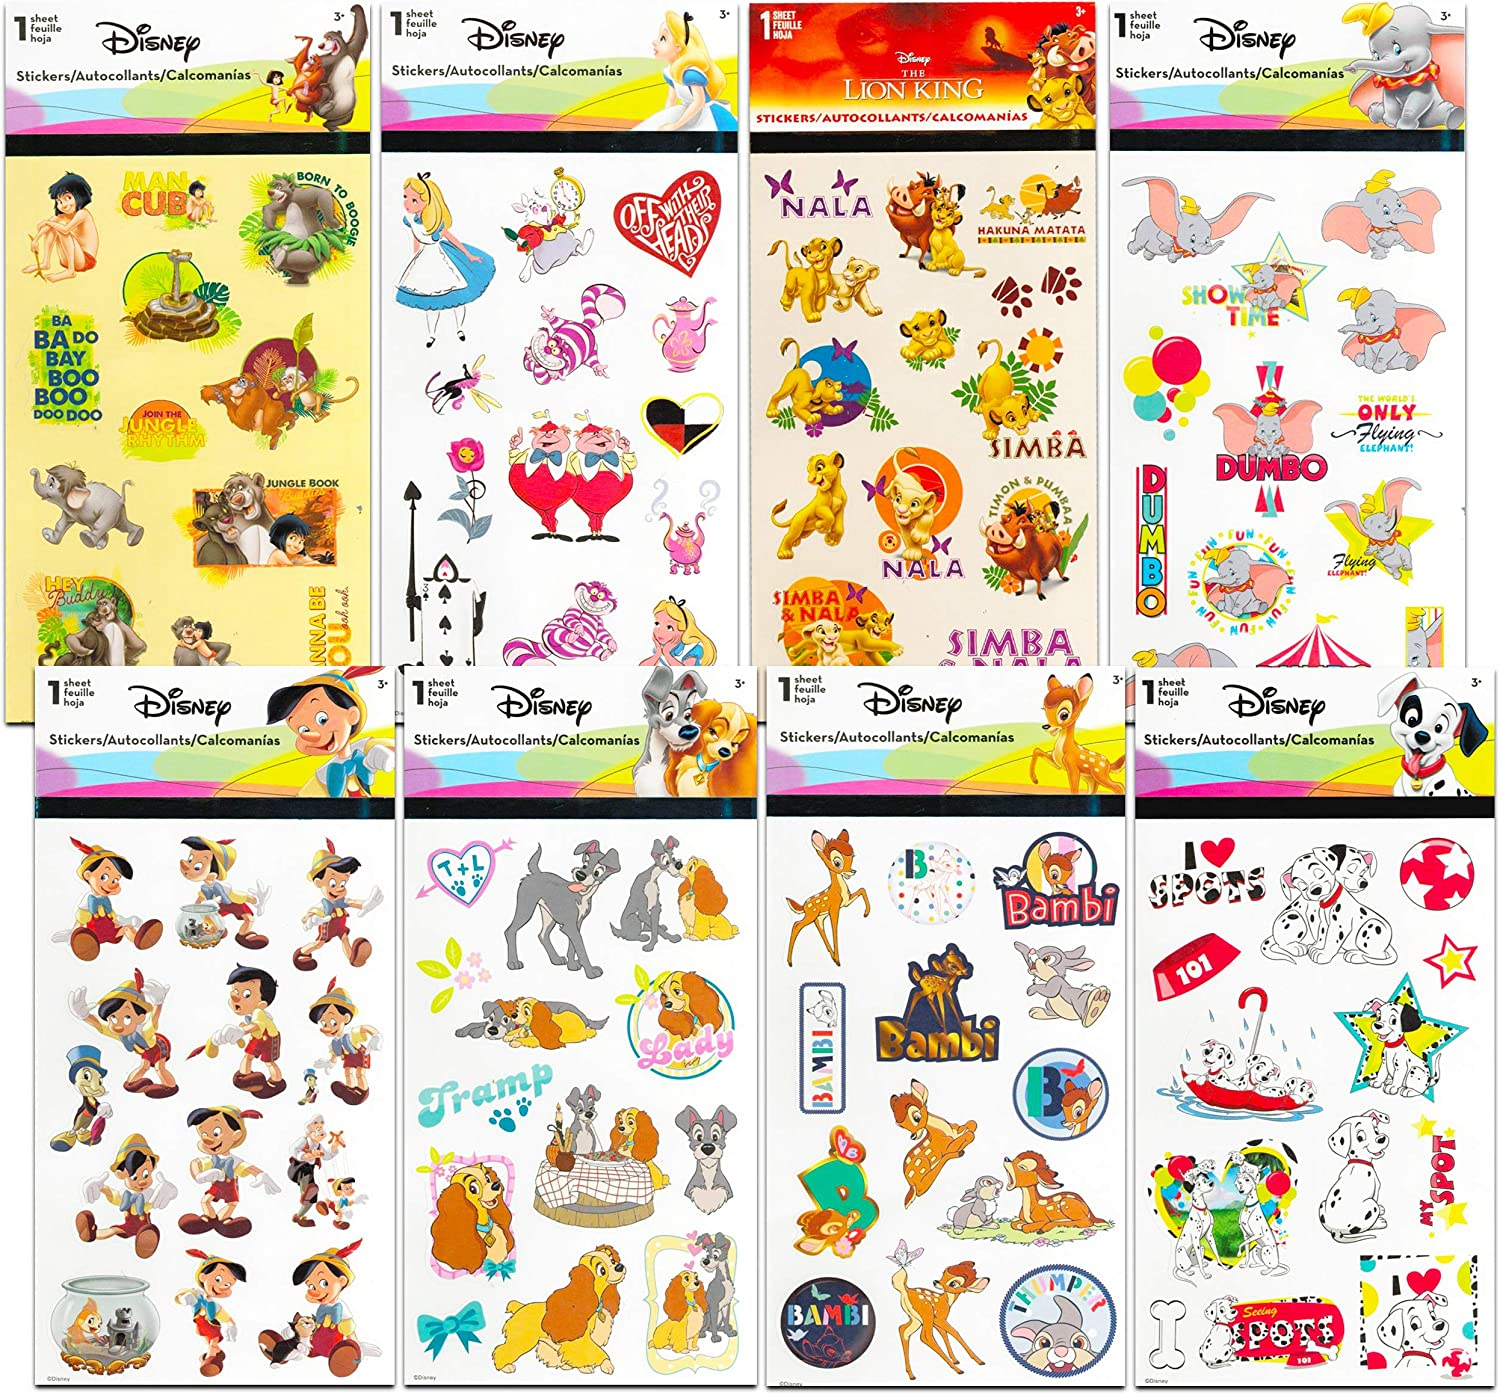 Classic Disney Stickers Party Favors Mega Assortment ~ Bundle Includes 16 Disney Sticker Sheets Featuring Bambi, 101 Dalmatians, Lion King, Jungle Book, Pinocchio, and More (Over 200 Stickers!)